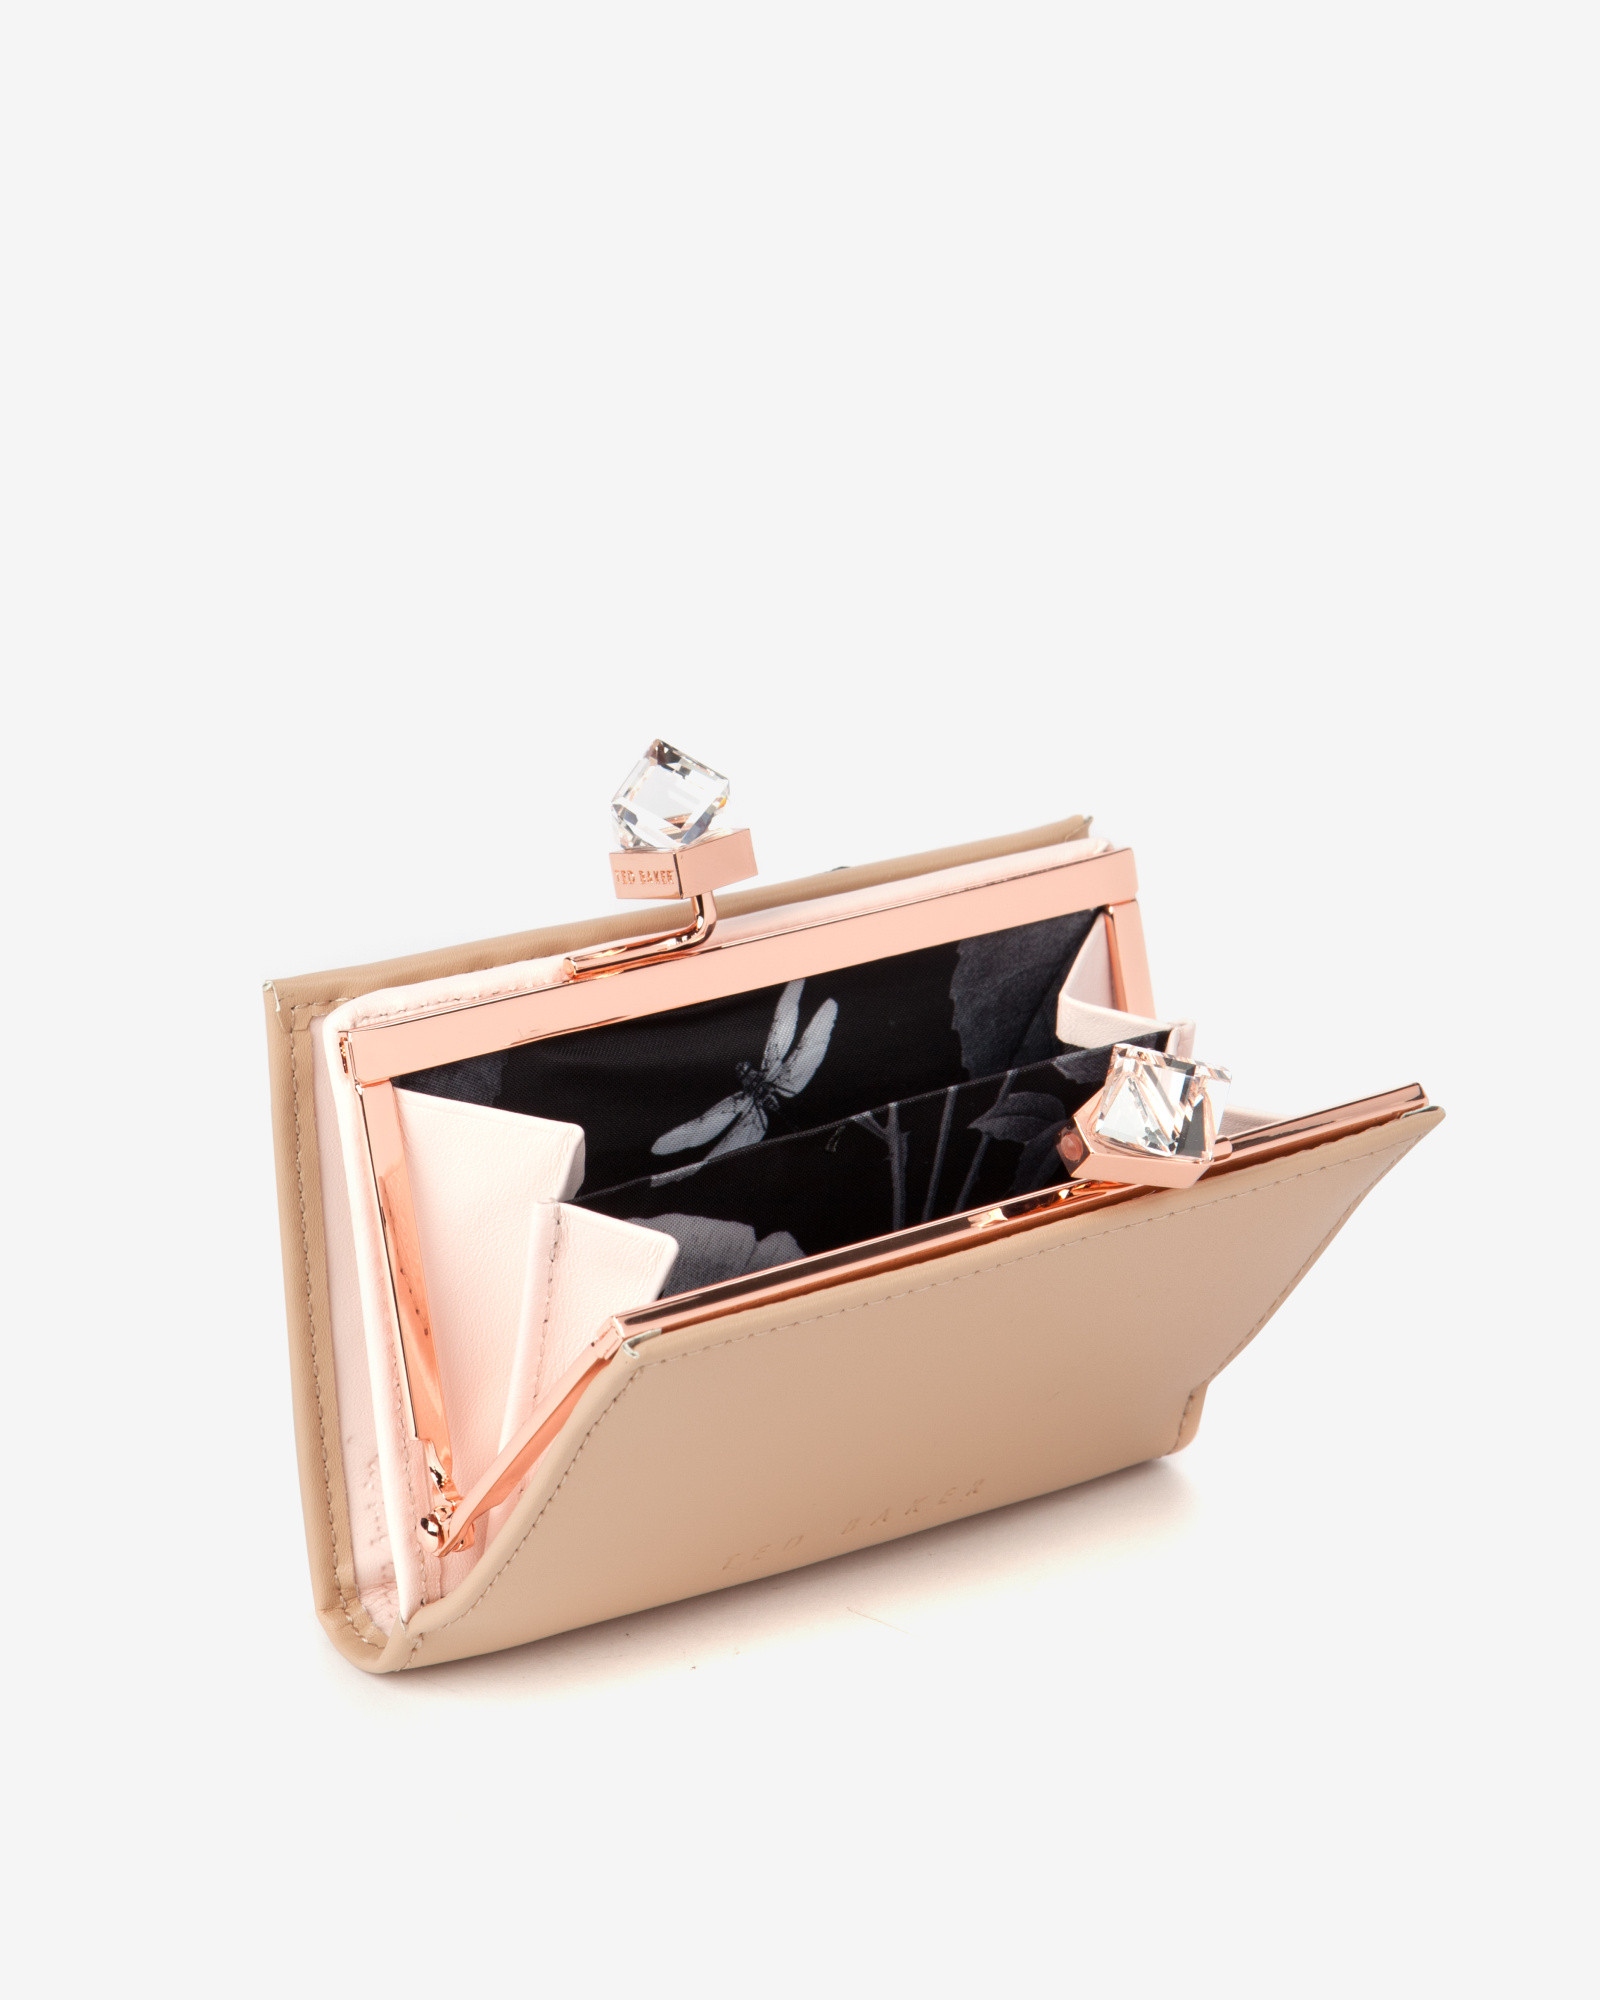 Nicole Miller Jewelry Box >> Ted baker Small Square Crystal Purse in Natural | Lyst